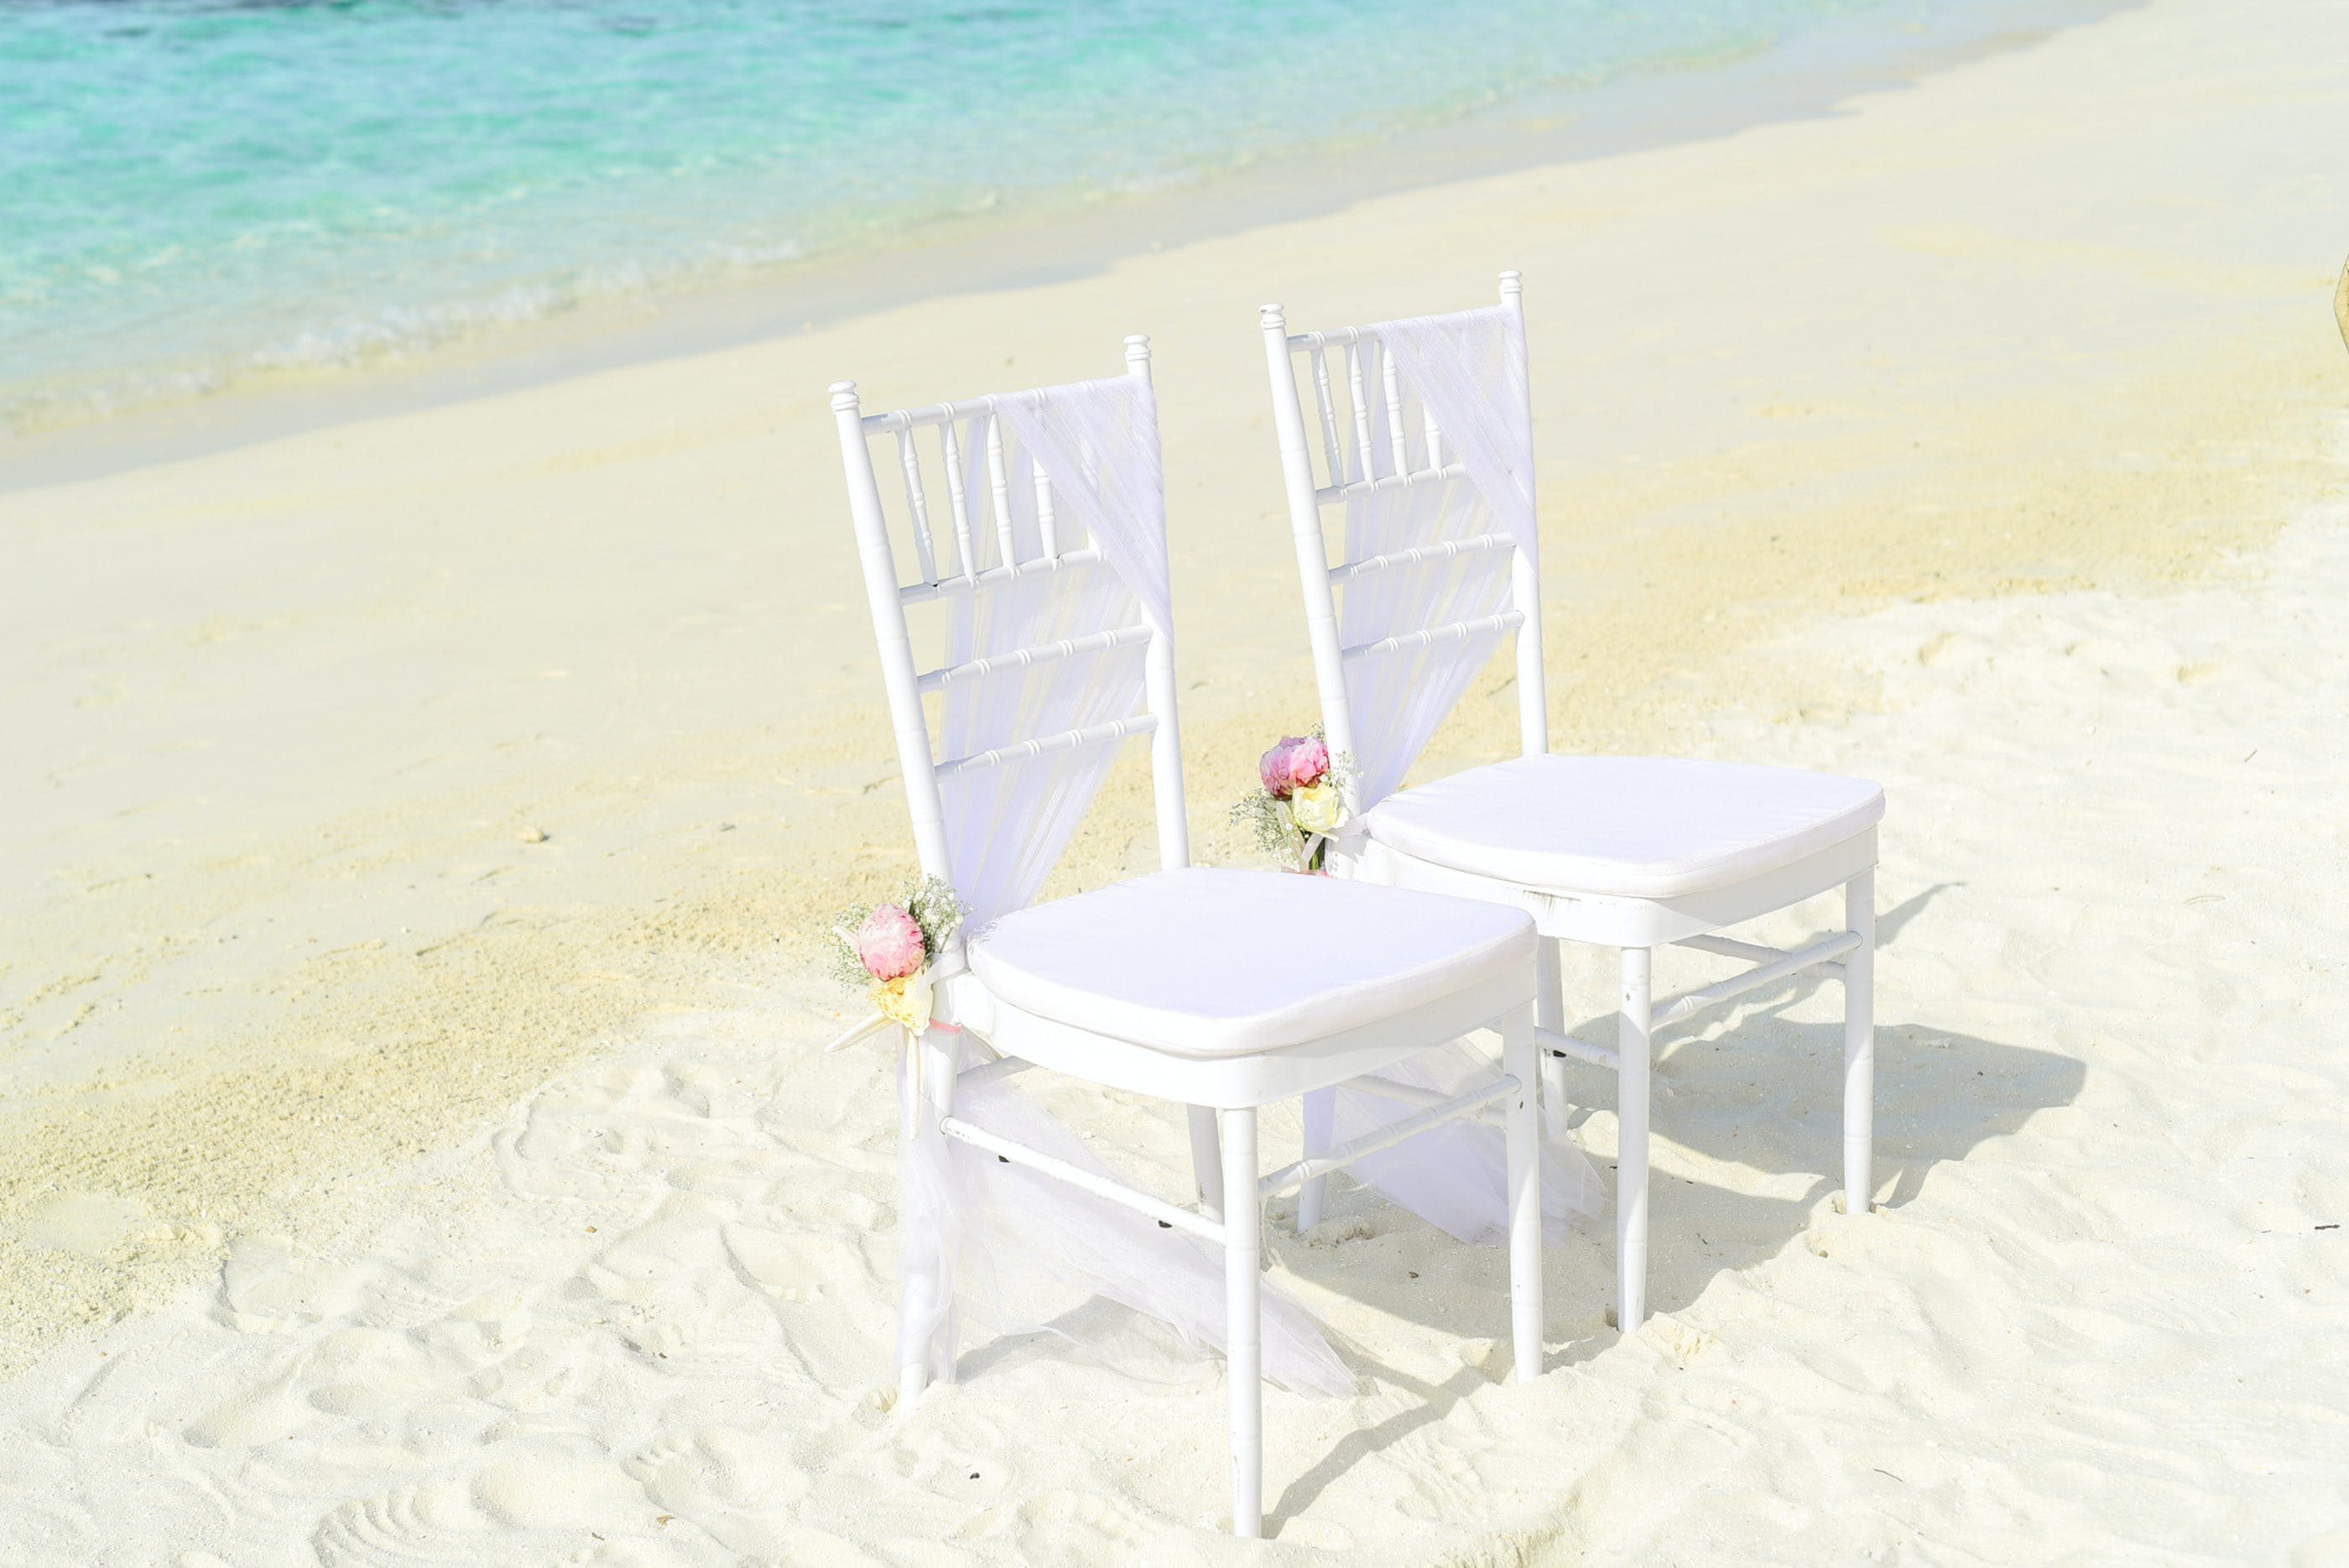 Two White Armless Chairs on Seashore